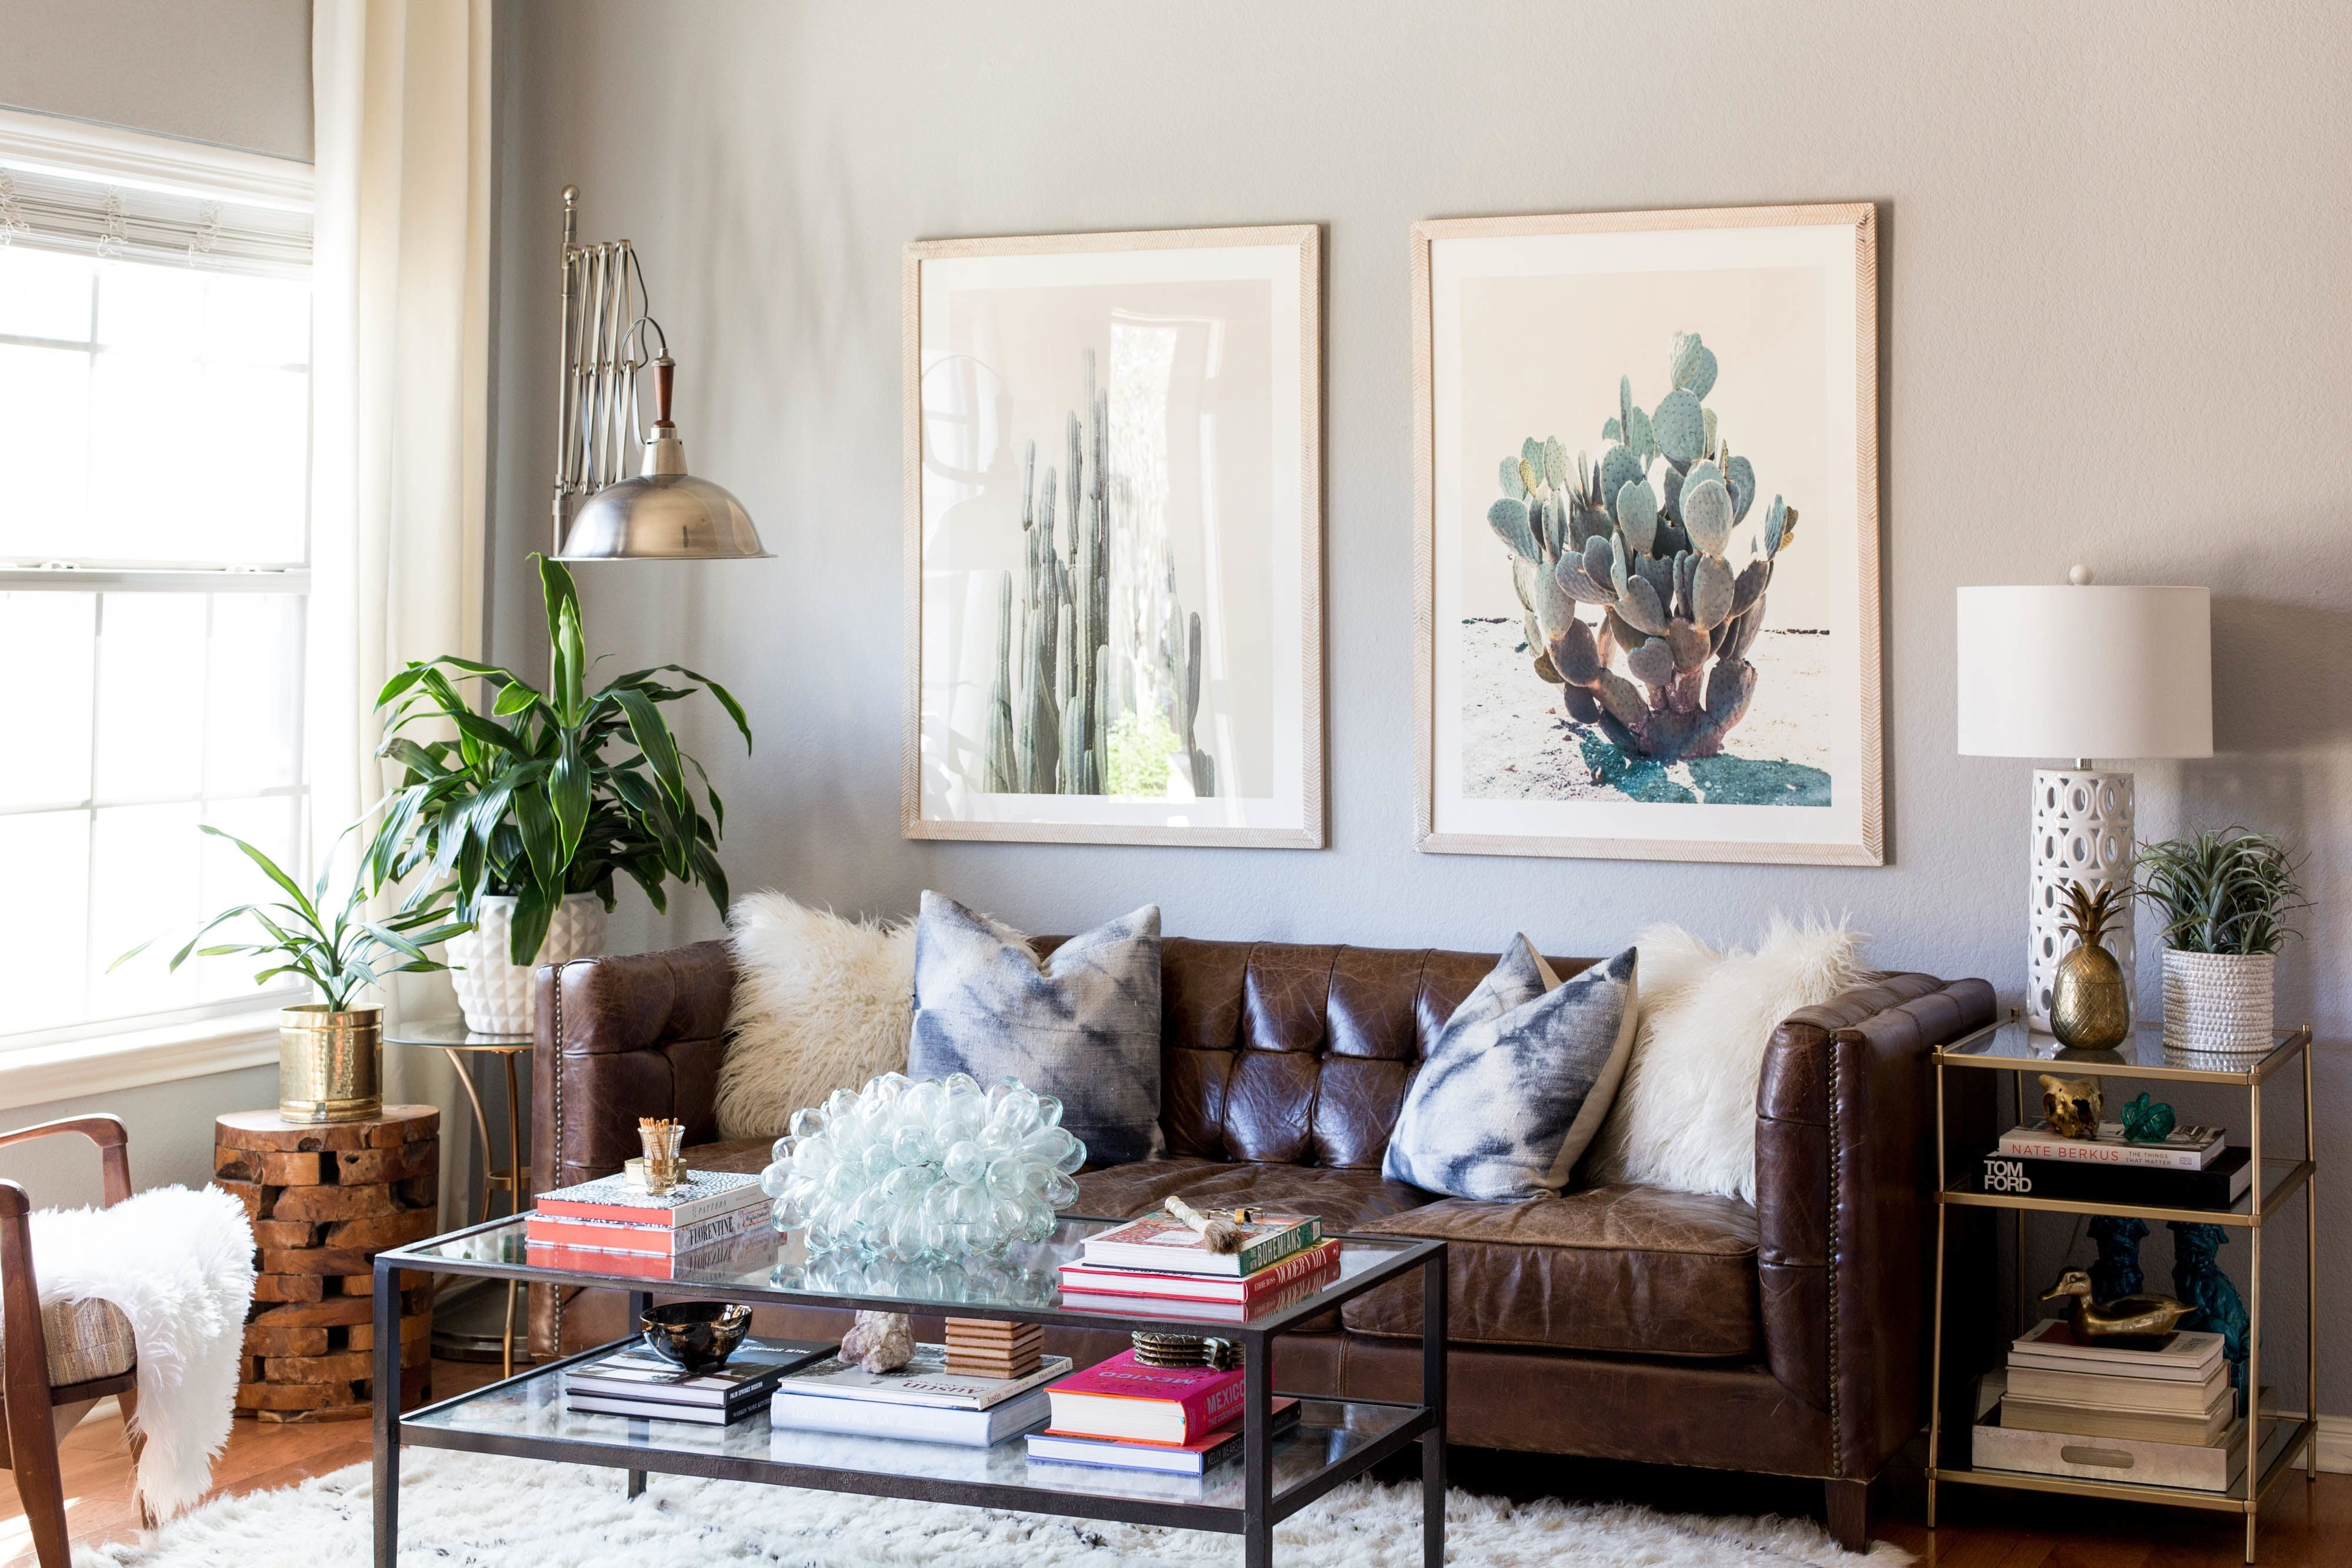 An austin house evolves into california cool home ideas - Brown sofa living room decor ideas ...